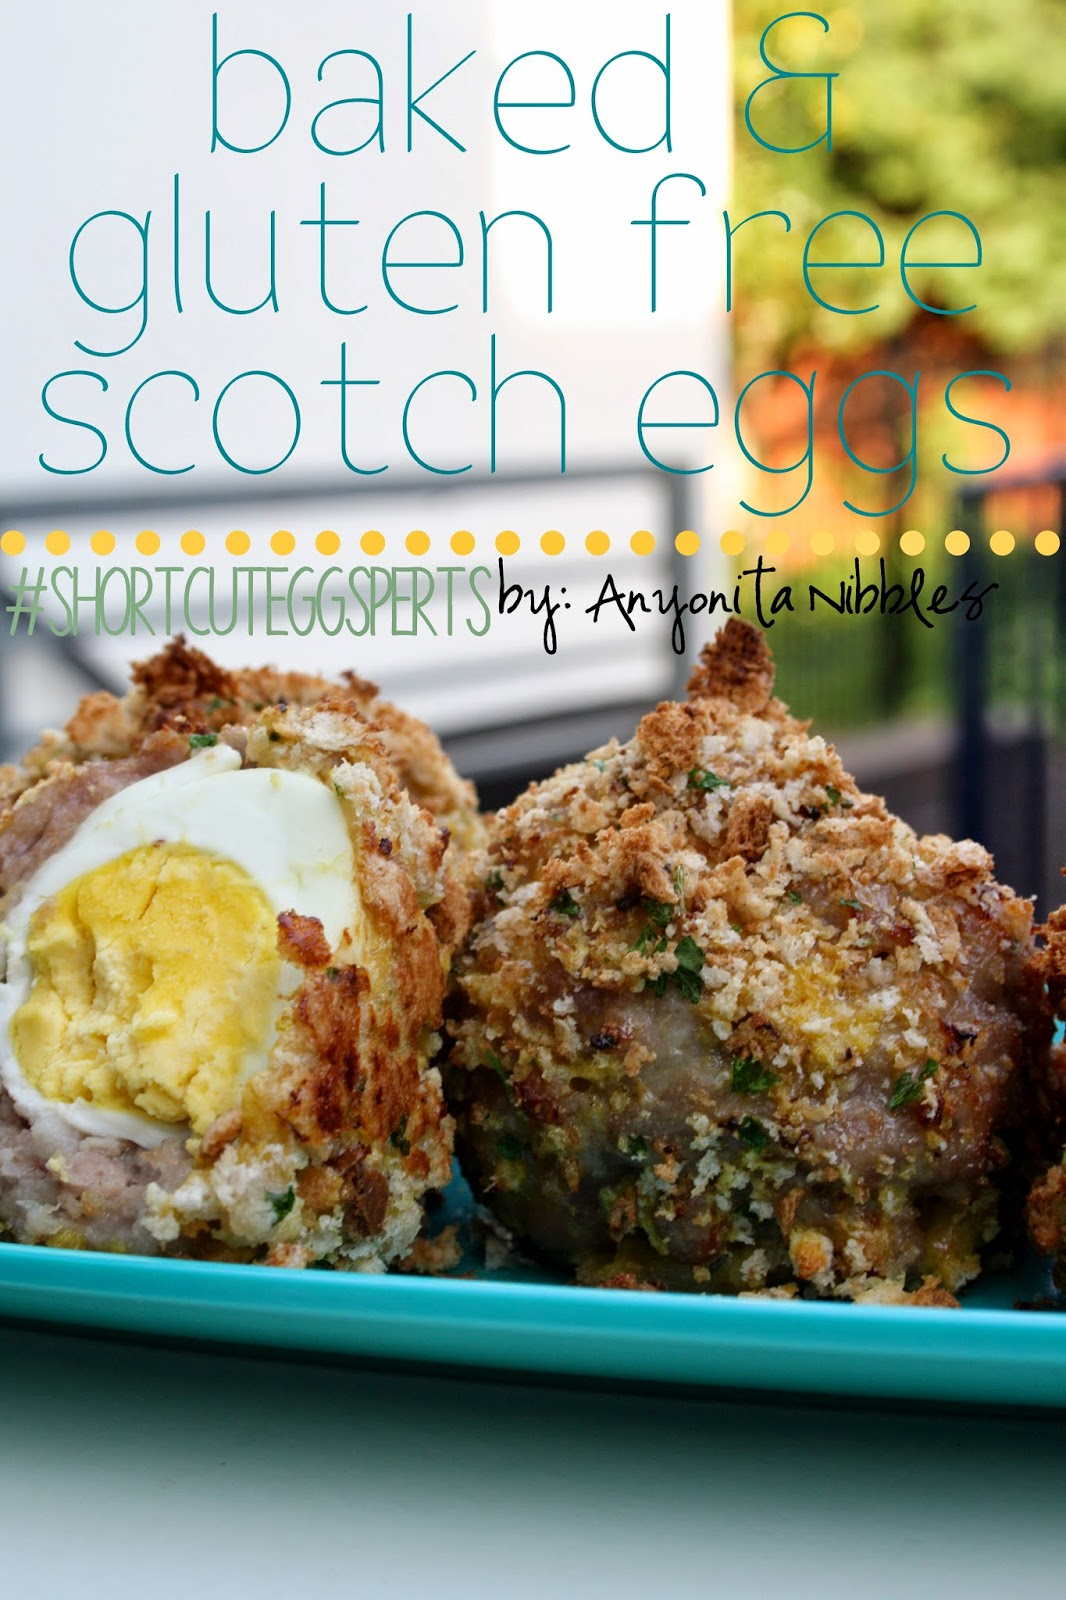 These Baked & Gluten Free Scotch Eggs are a British picnic staple. From Anyonita Nibbles